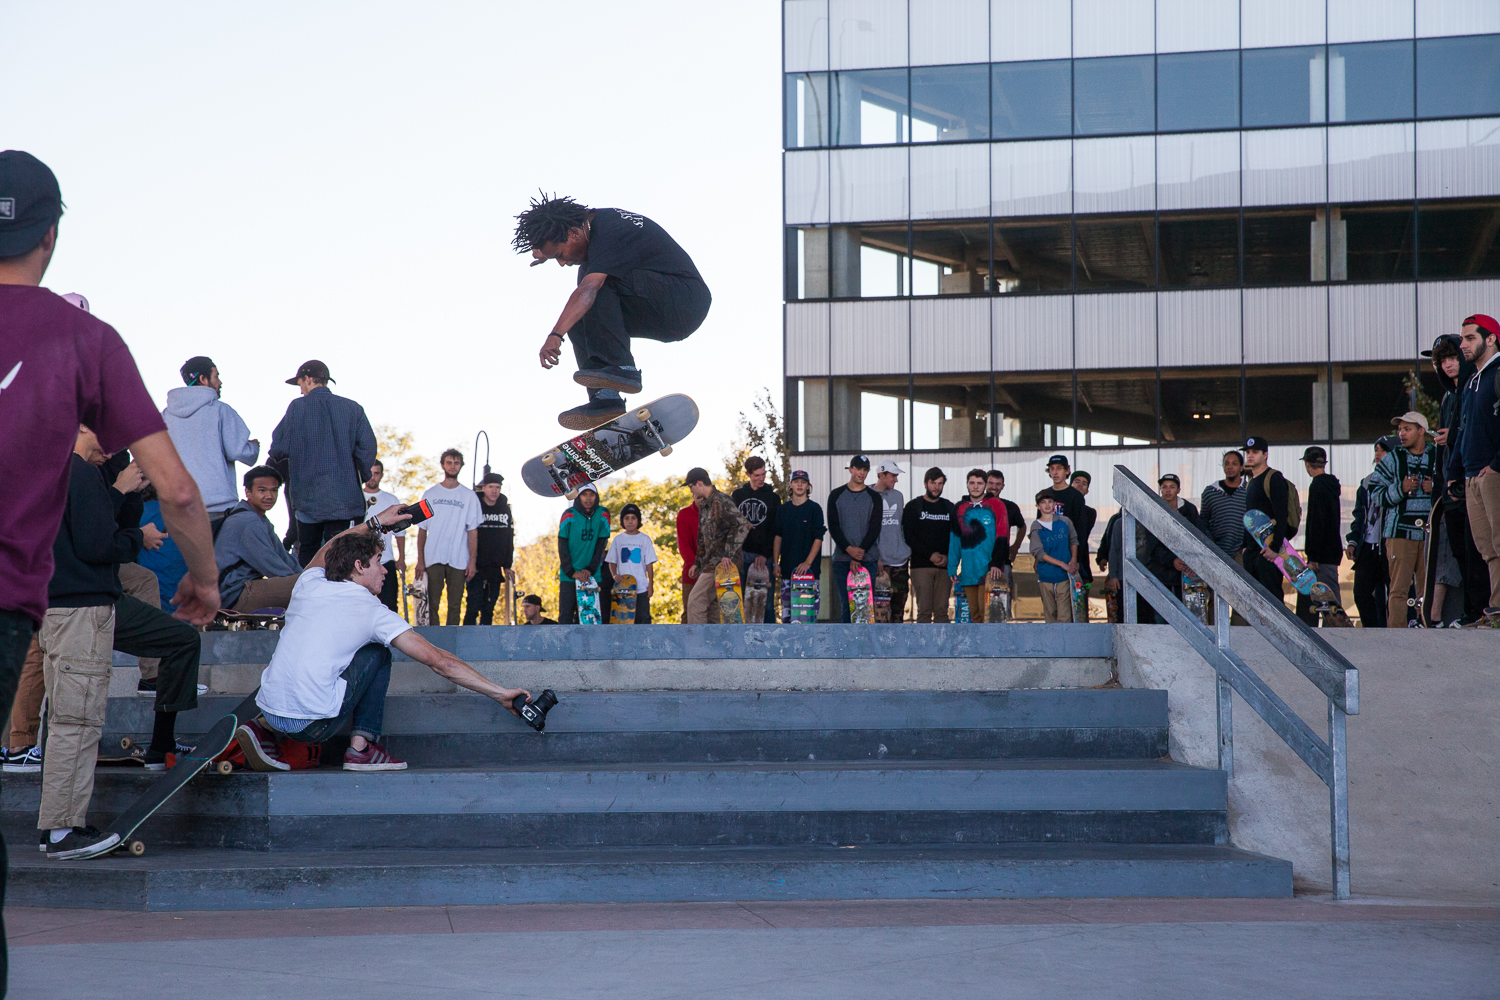 Na-kel nails a nollie hardflip.